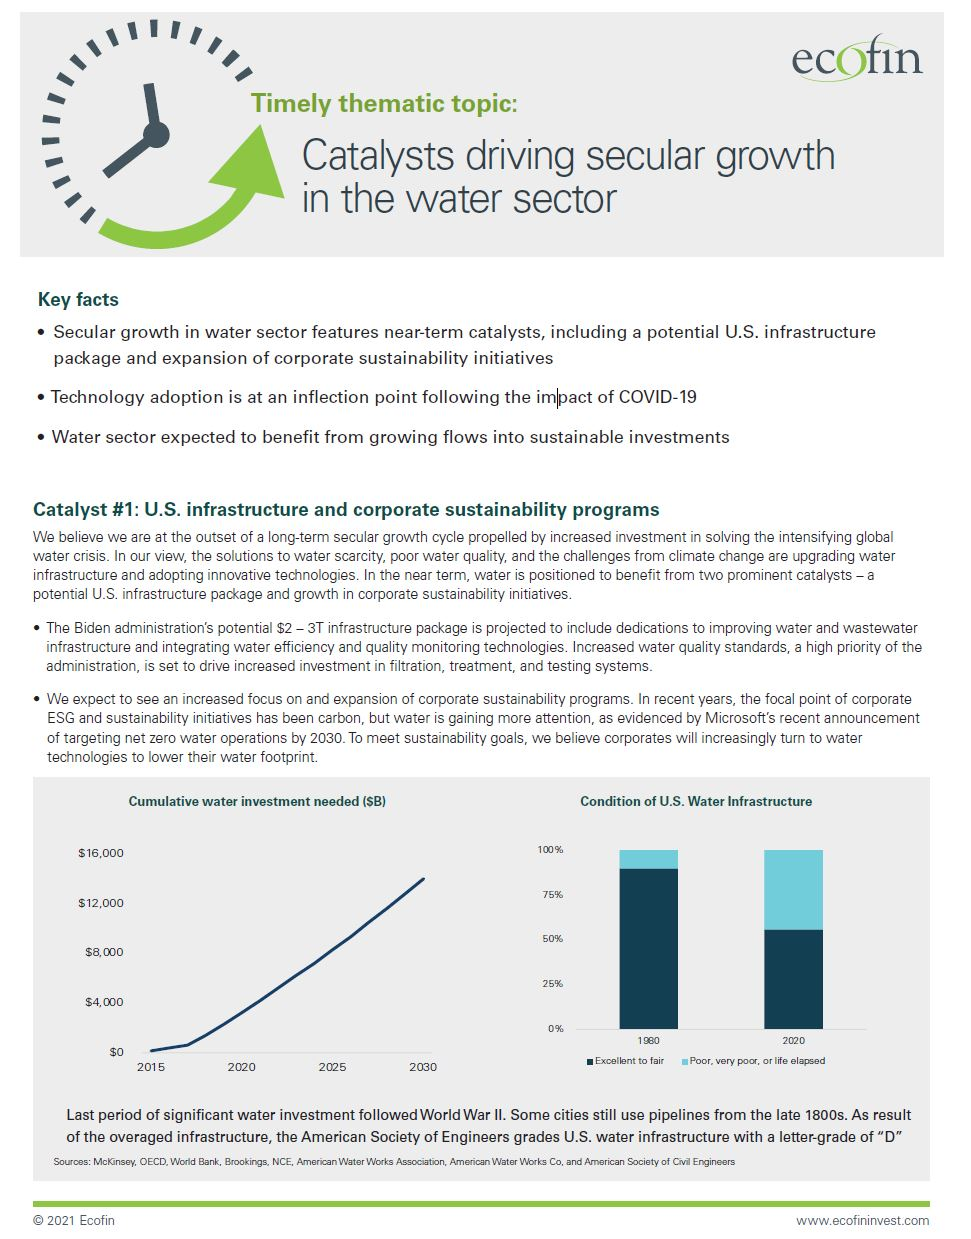 Timely thematic topic: Catalysts driving secular growth in the water sector